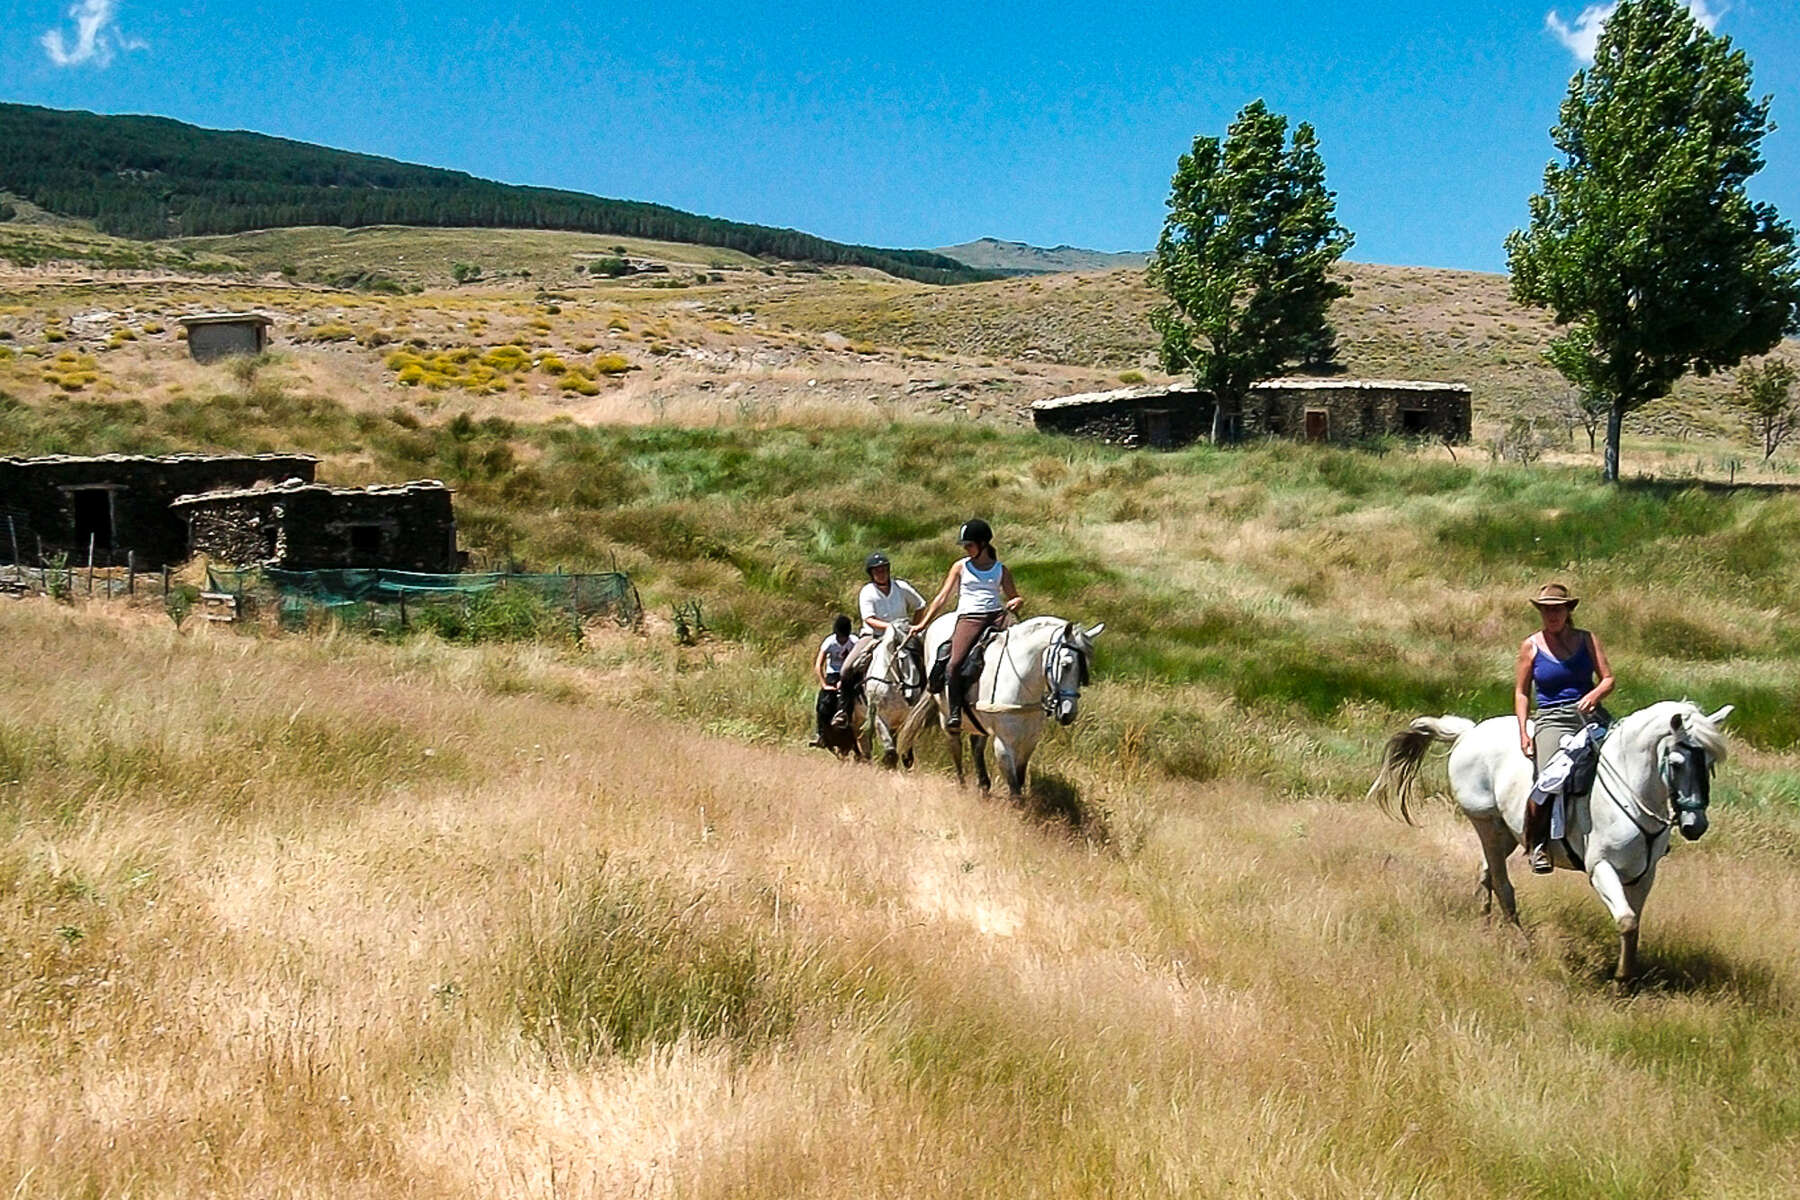 Trail ride through Spain on horseback